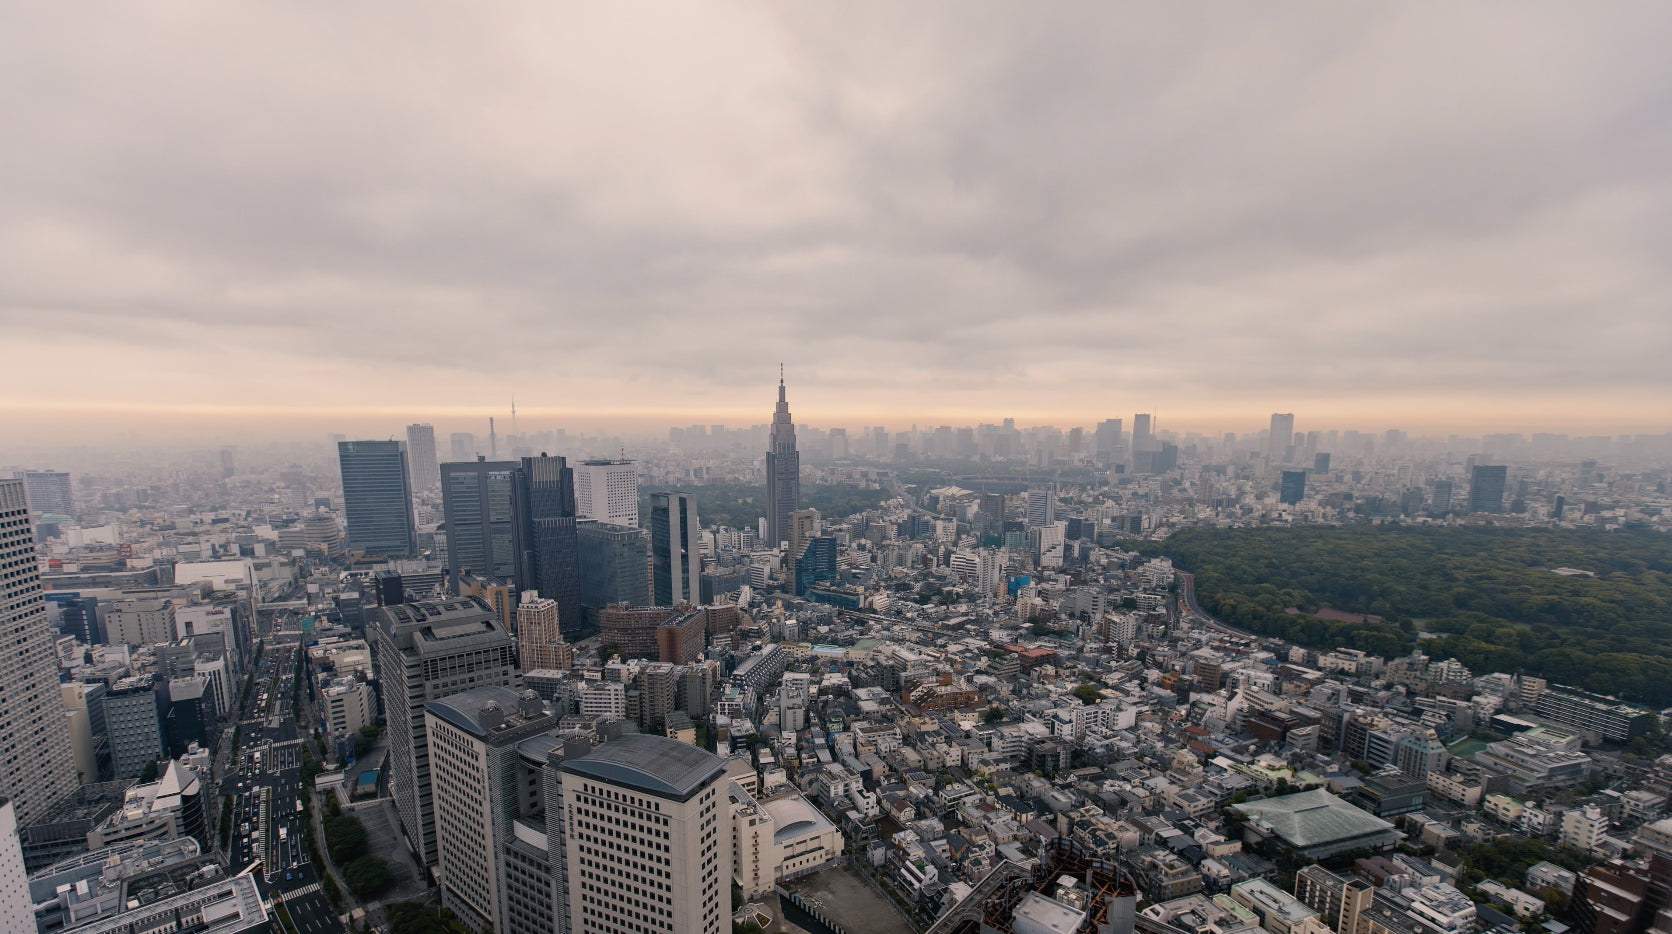 Free 4K Time Lapse Stock Video: Ominous Clouds and Smog in Asia